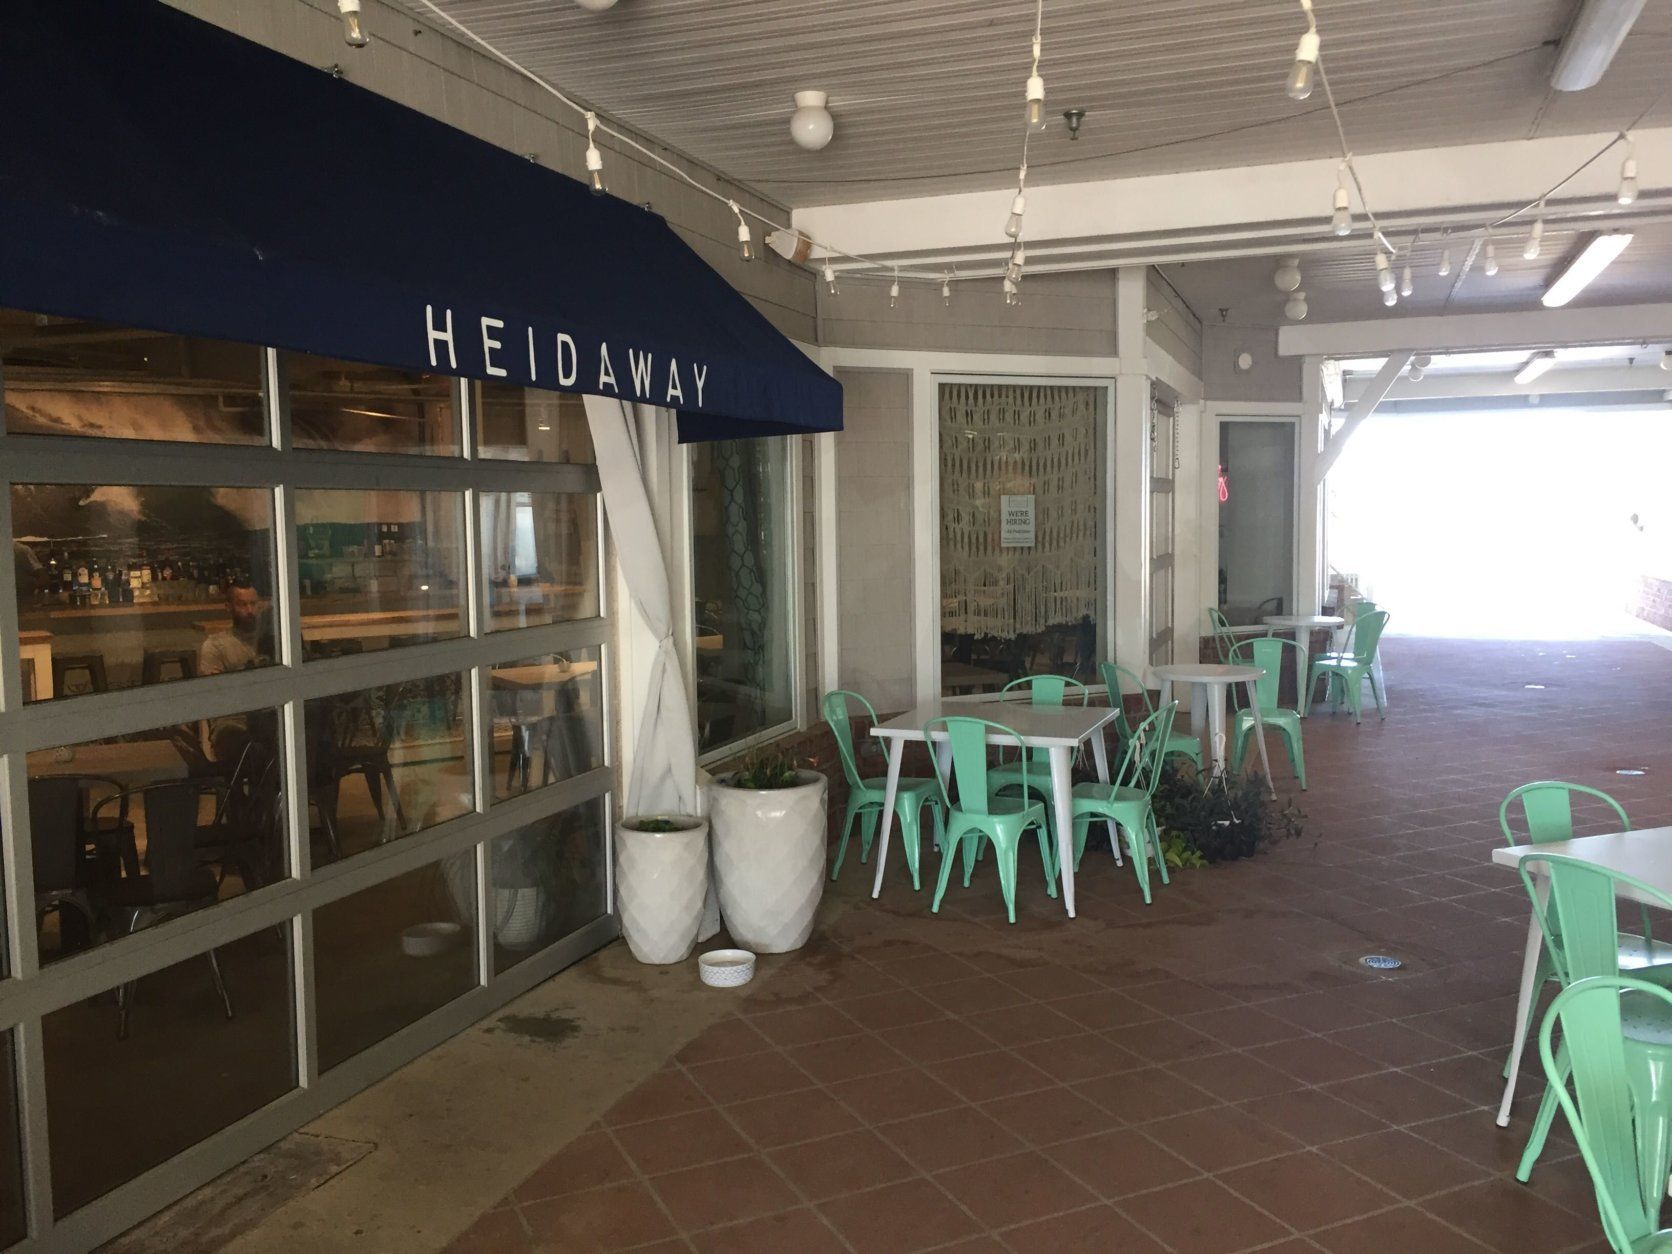 Heideaway, a new restaurant and bar located on the Bethany Boardwalk. (WTOP/John Domen)